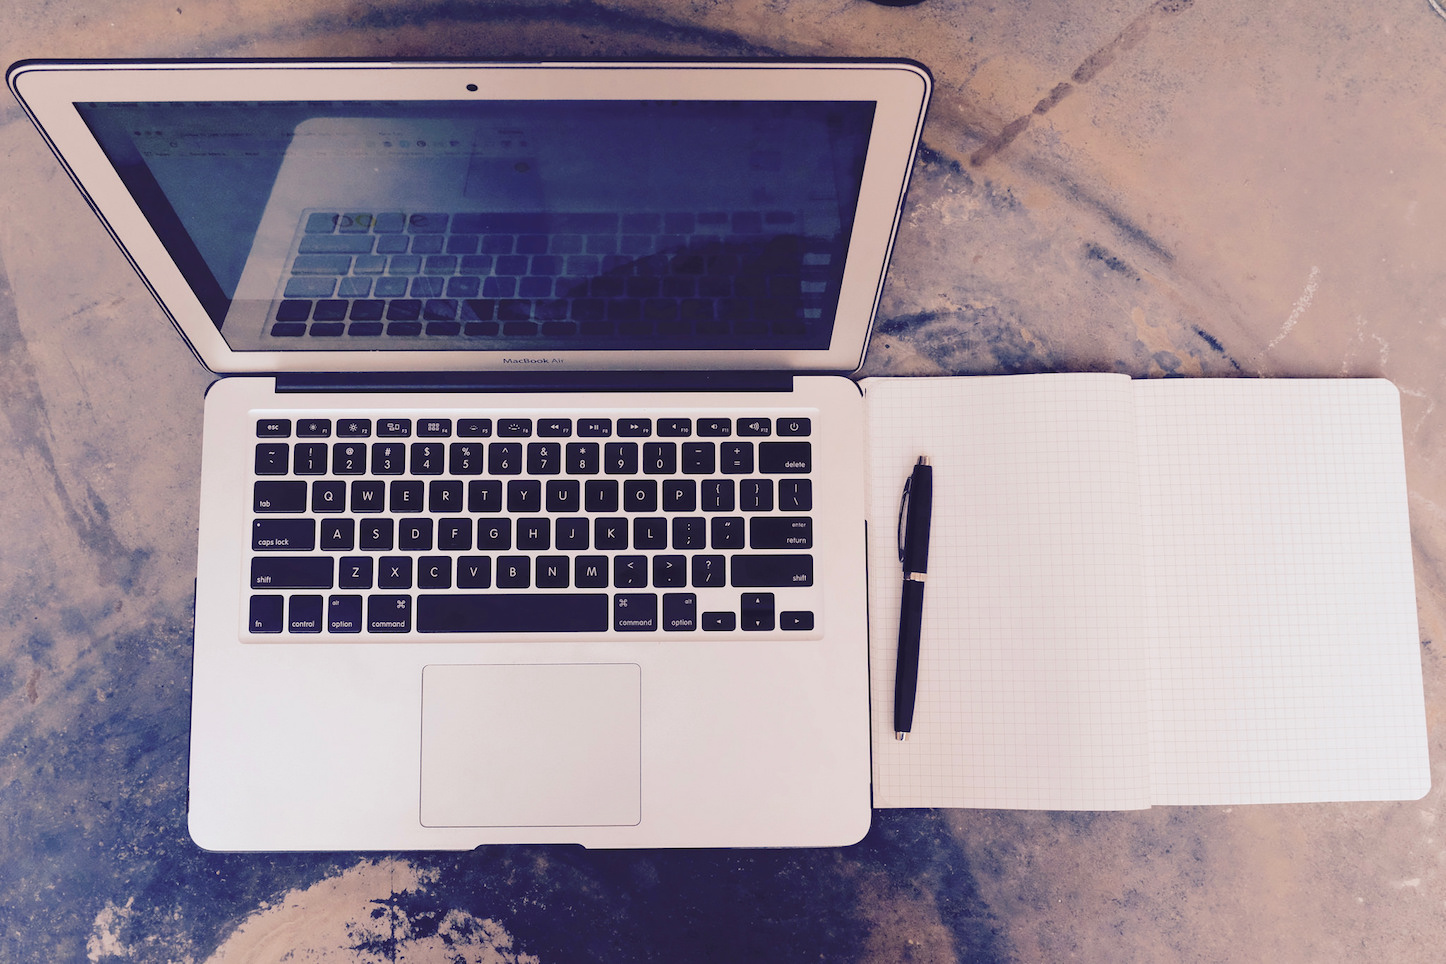 Macbook air with notebook and pen